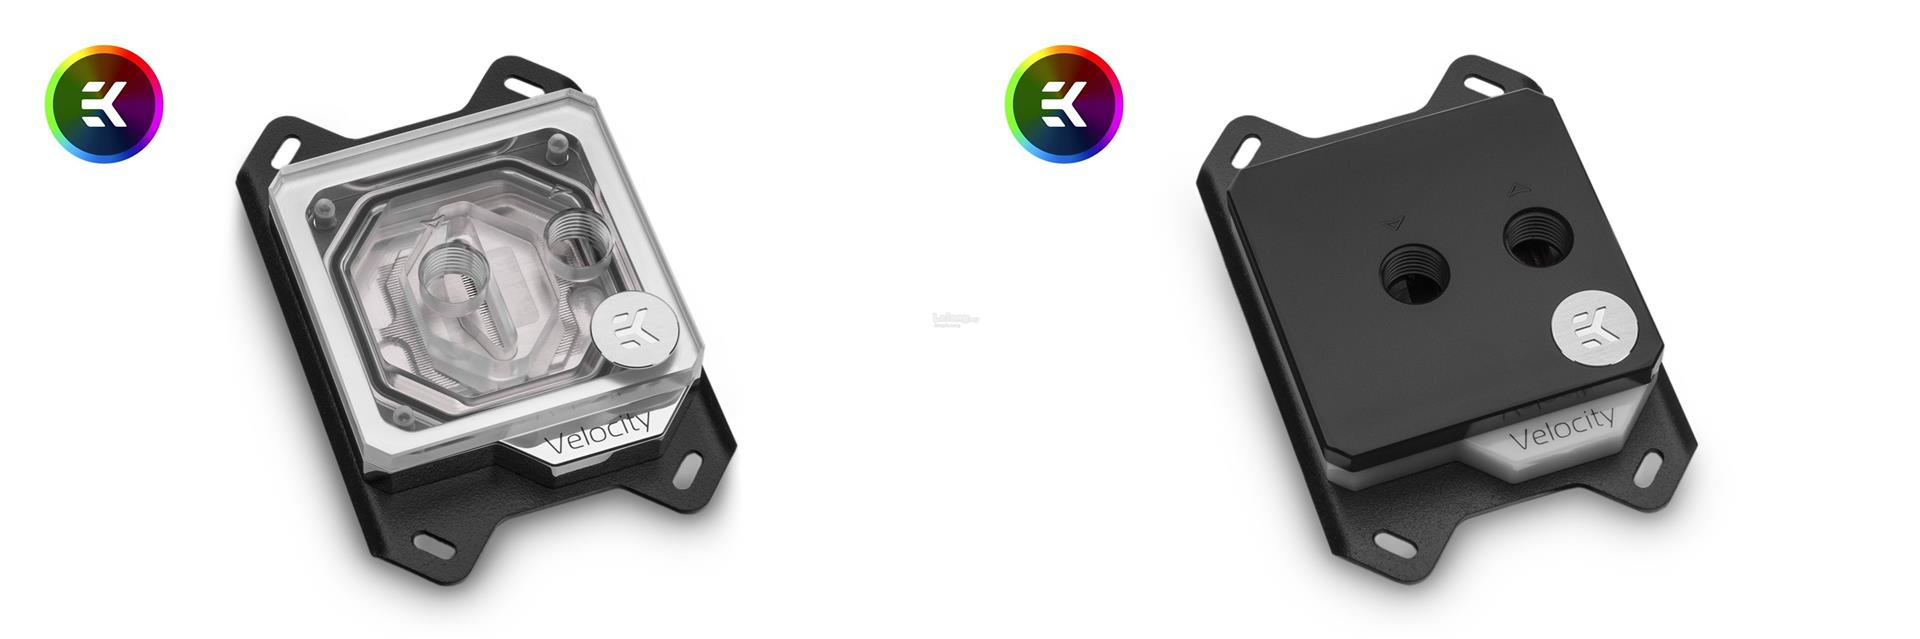 # EKWB EK-Velocity D-RGB # 2 Color Available | AMD